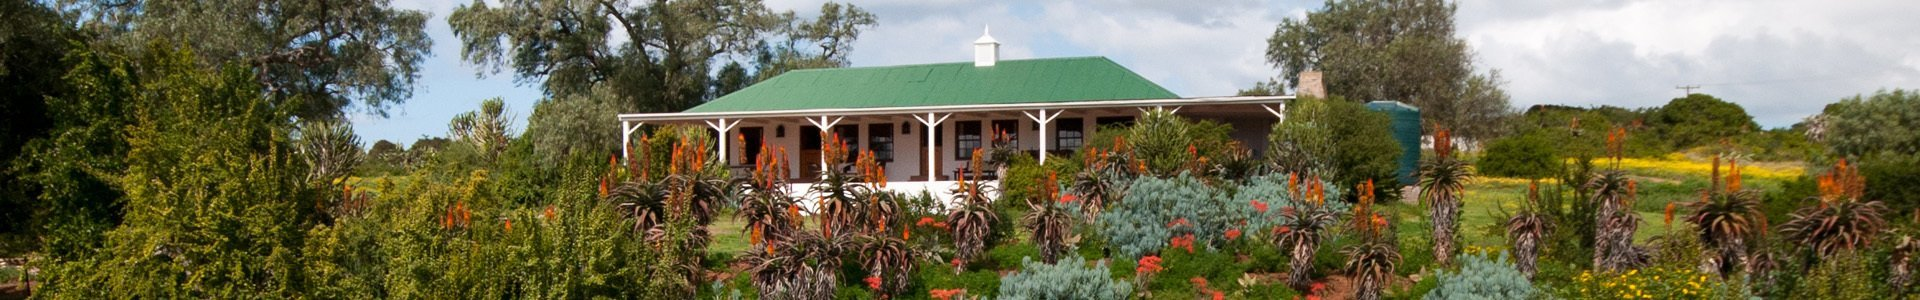 Amakhala Game Lodge Leeuwenbosch Country House Main Lodge Garden